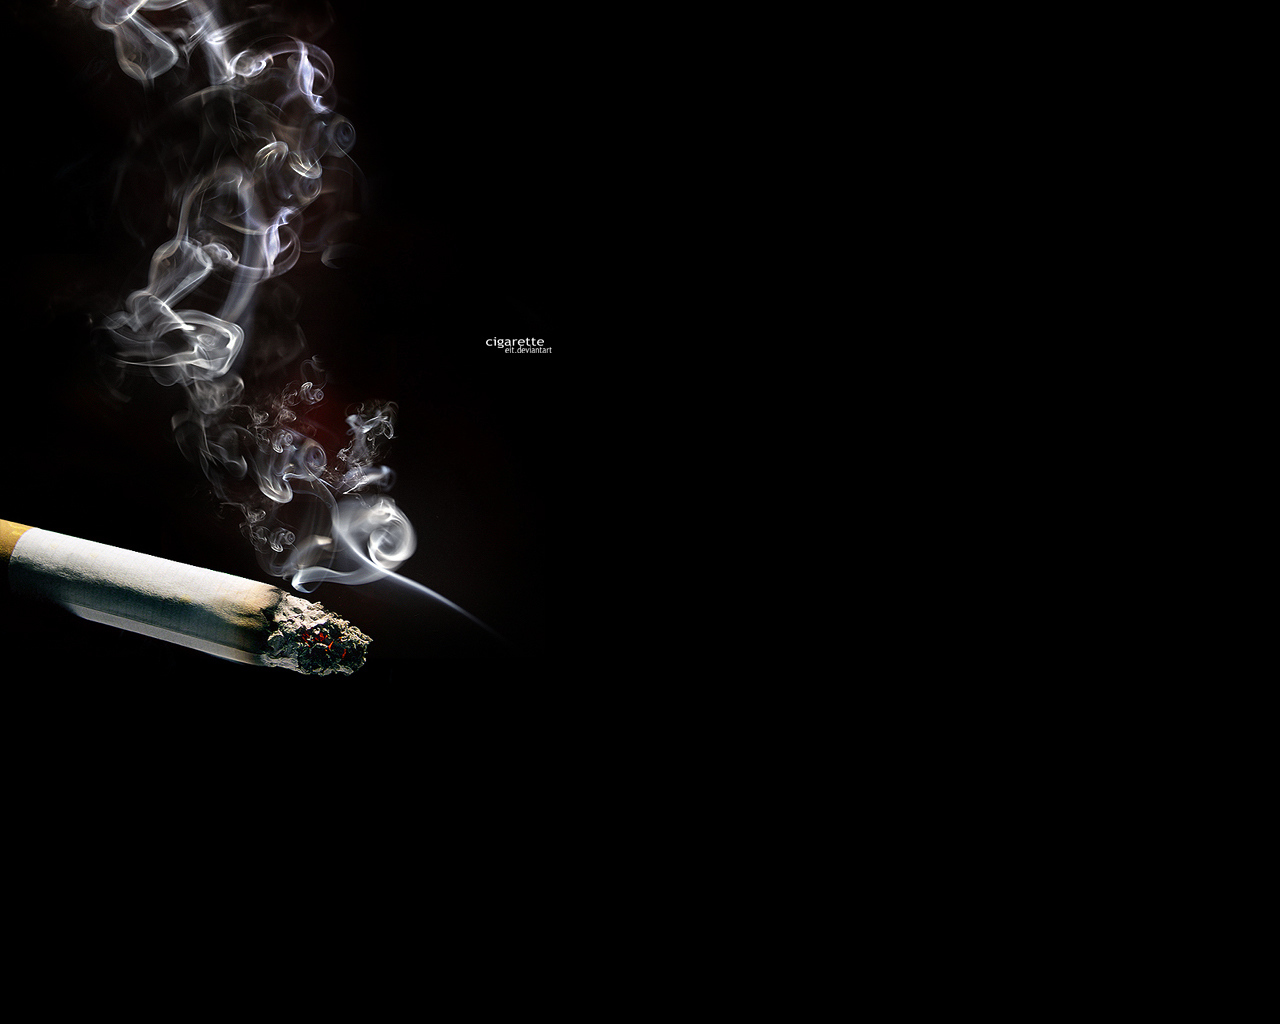 cigarette by eit